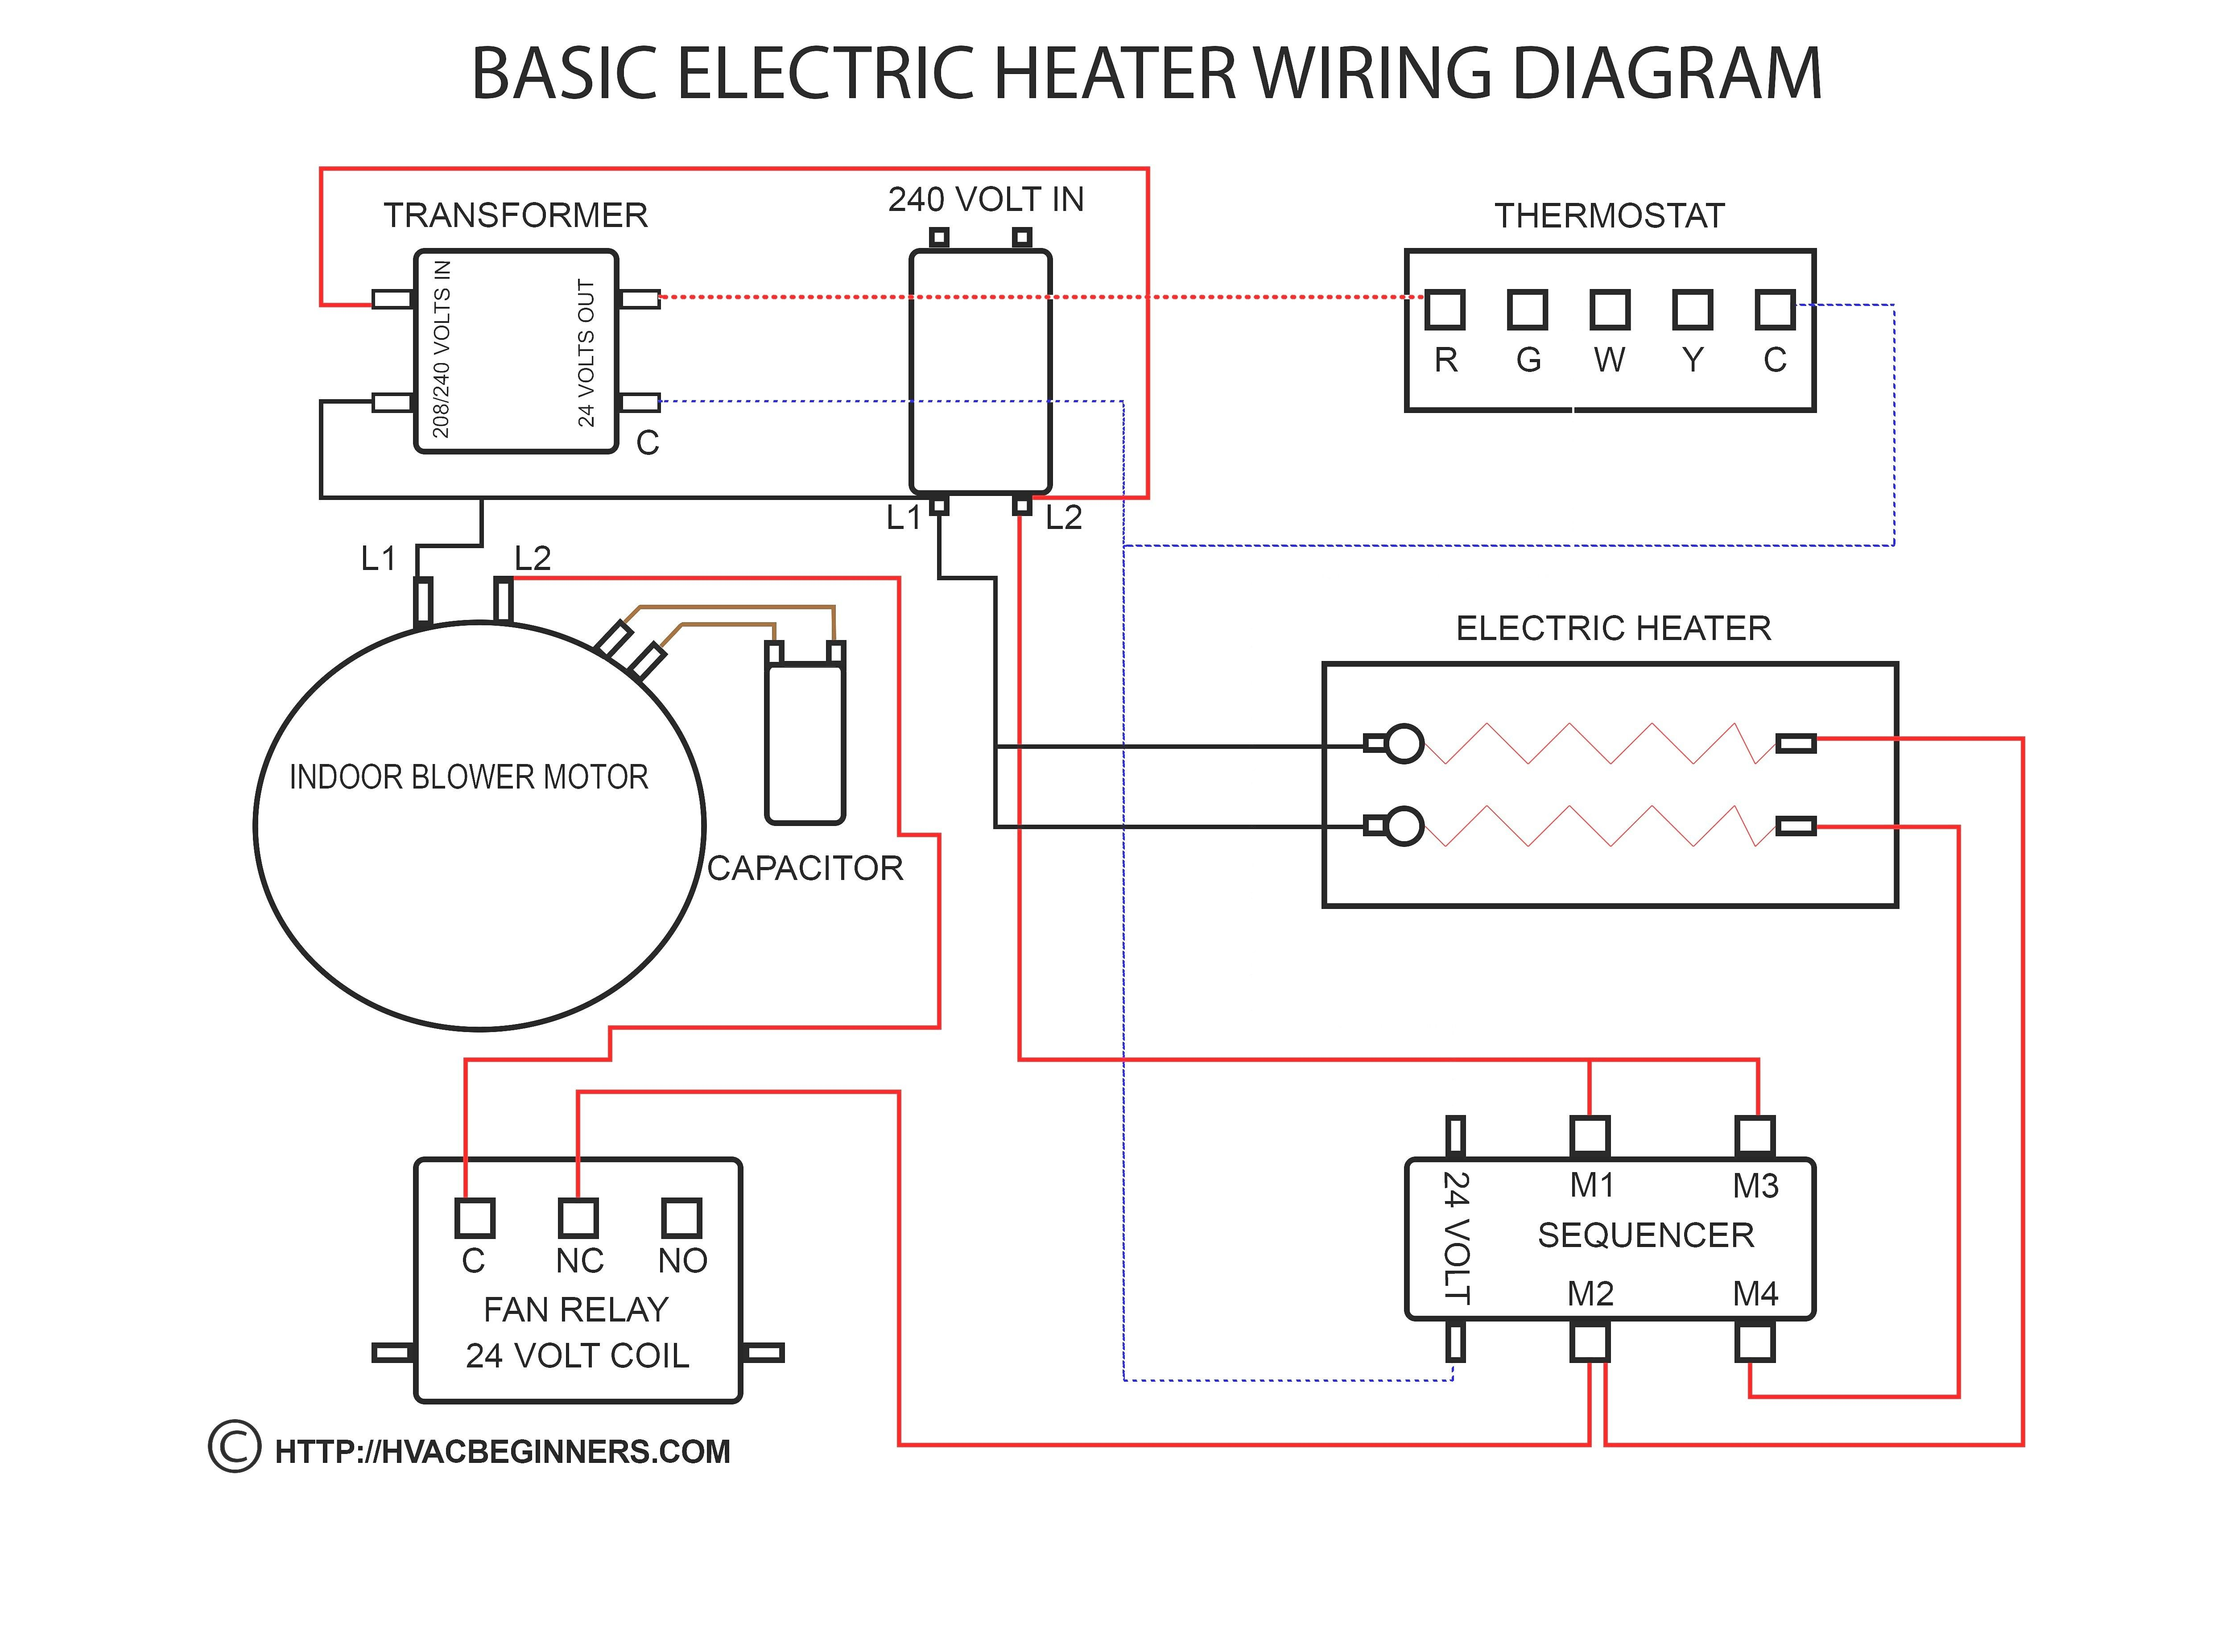 hight resolution of unique wiring circuit diagram diagram wiringdiagram diagramming diagramm visuals visualisation graphical